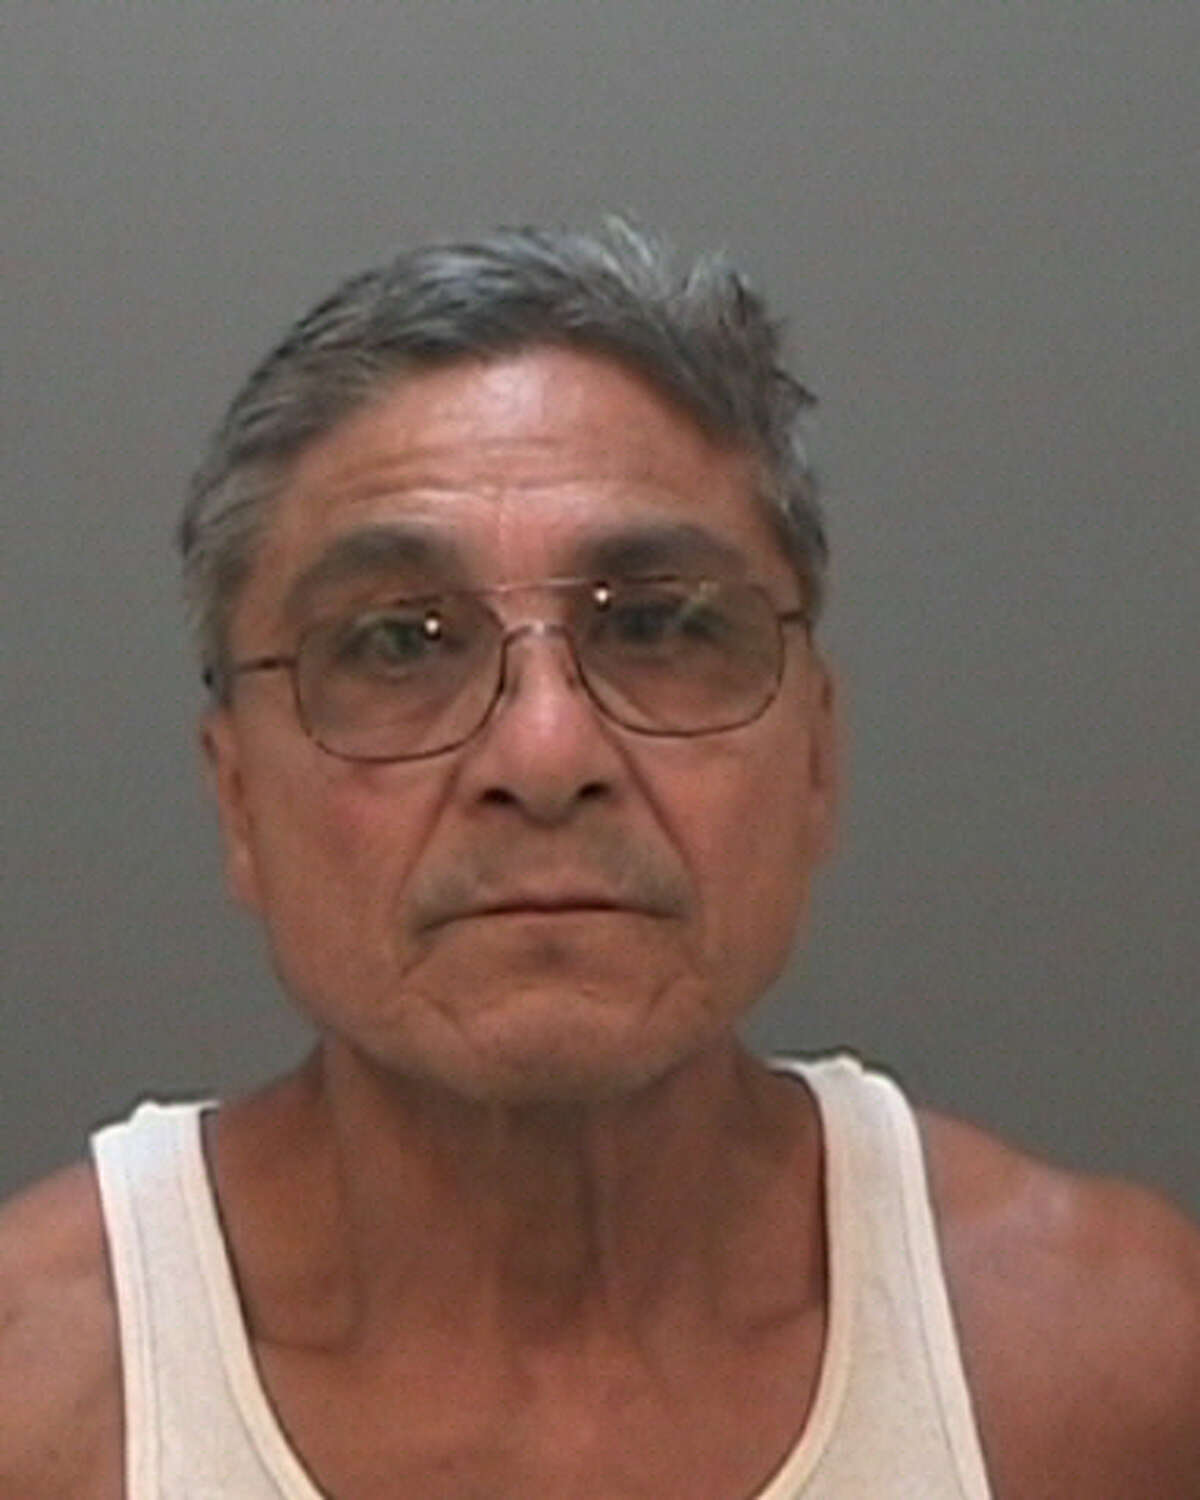 Jose Marin was arrested for interfering with public duties and resisting arrest on June 22, 2012.